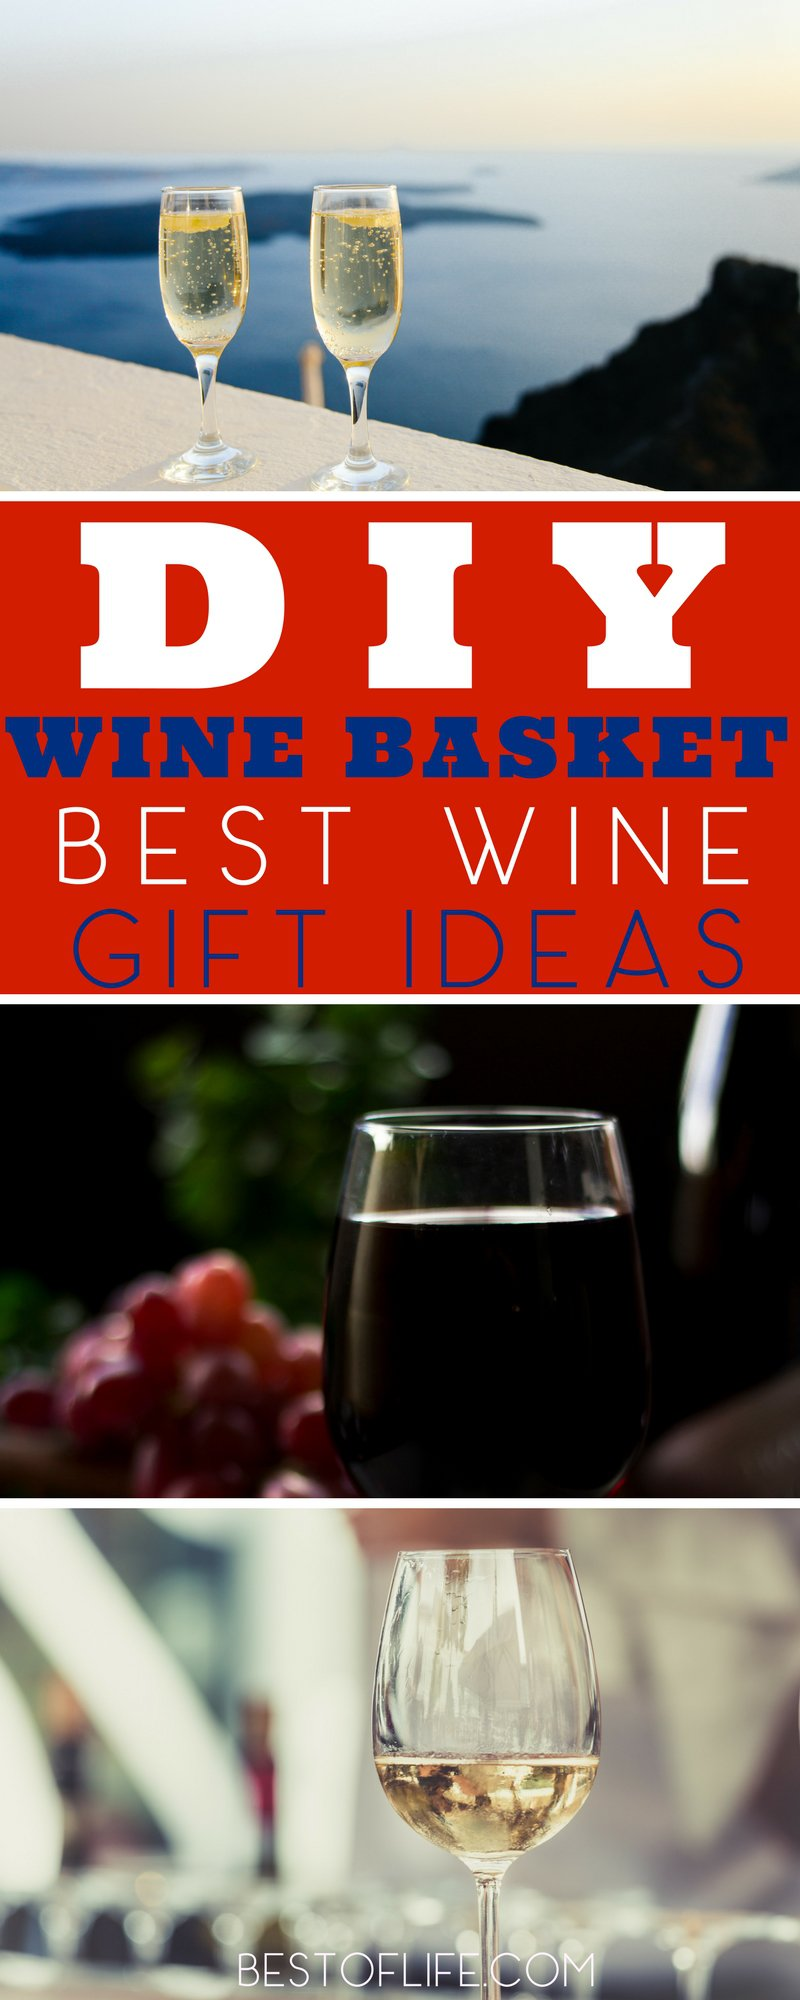 best wine gifts to give diy wine basket ideas the best